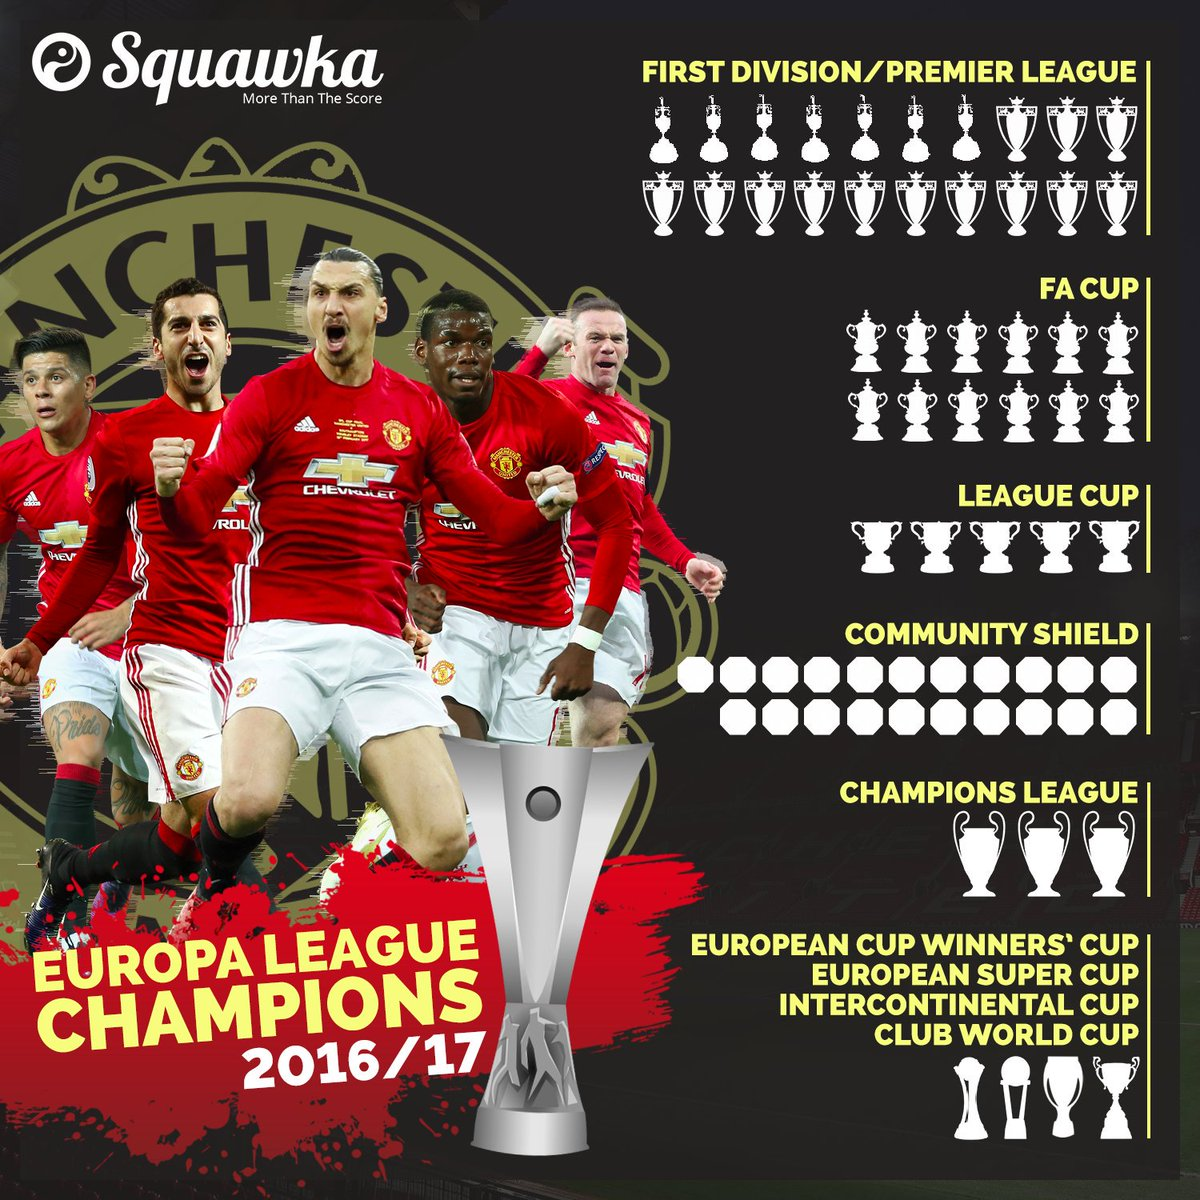 Squawka Football On Twitter Man Utd Have Now Won Every Major Trophy Available To Them Complete Set